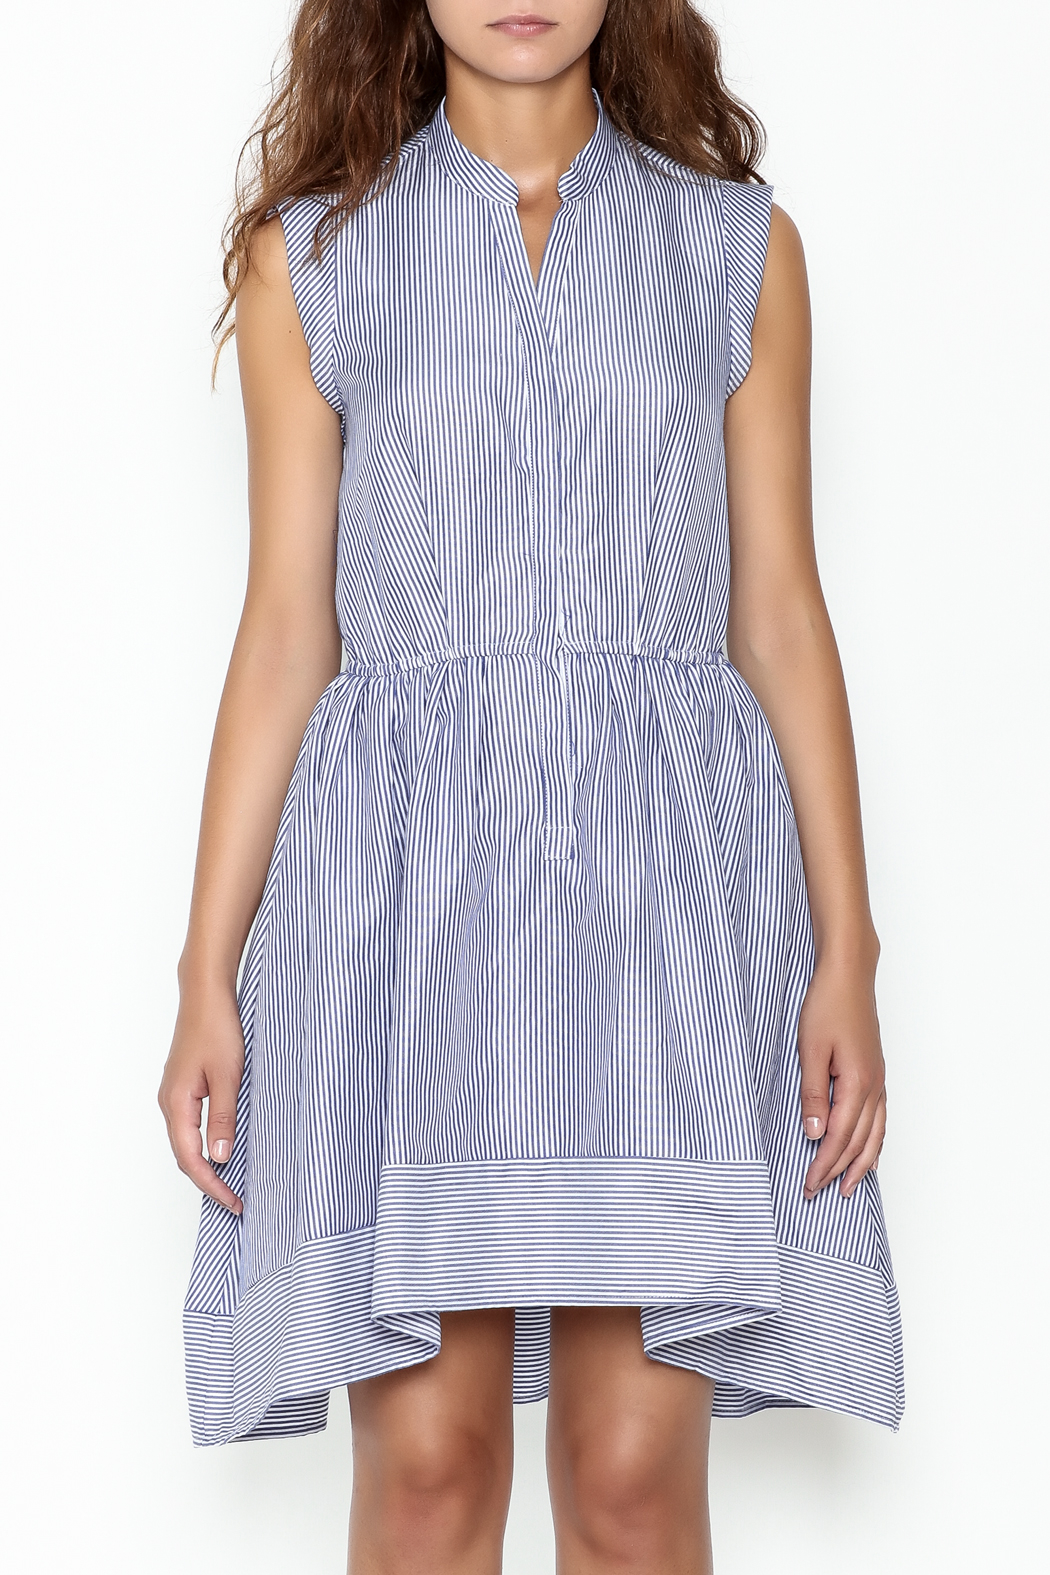 Lucy Paris Striped Fit & Flare Dress - Front Full Image